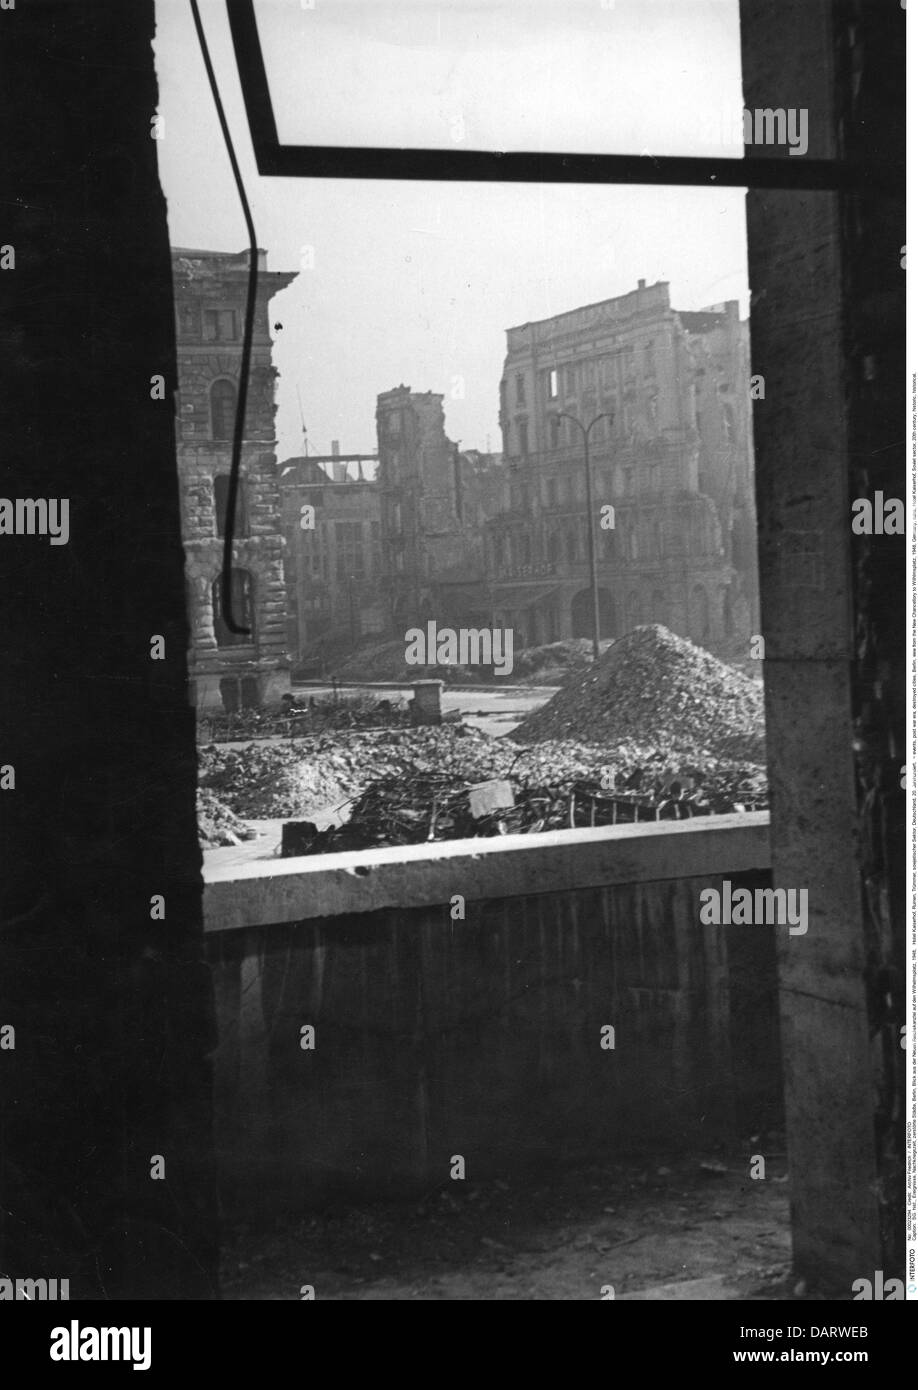 events, post war era, destroyed cities, Berlin, view from the New Chancellory to Wilhlmsplatz, 1948, Germany, ruins, - Stock Image